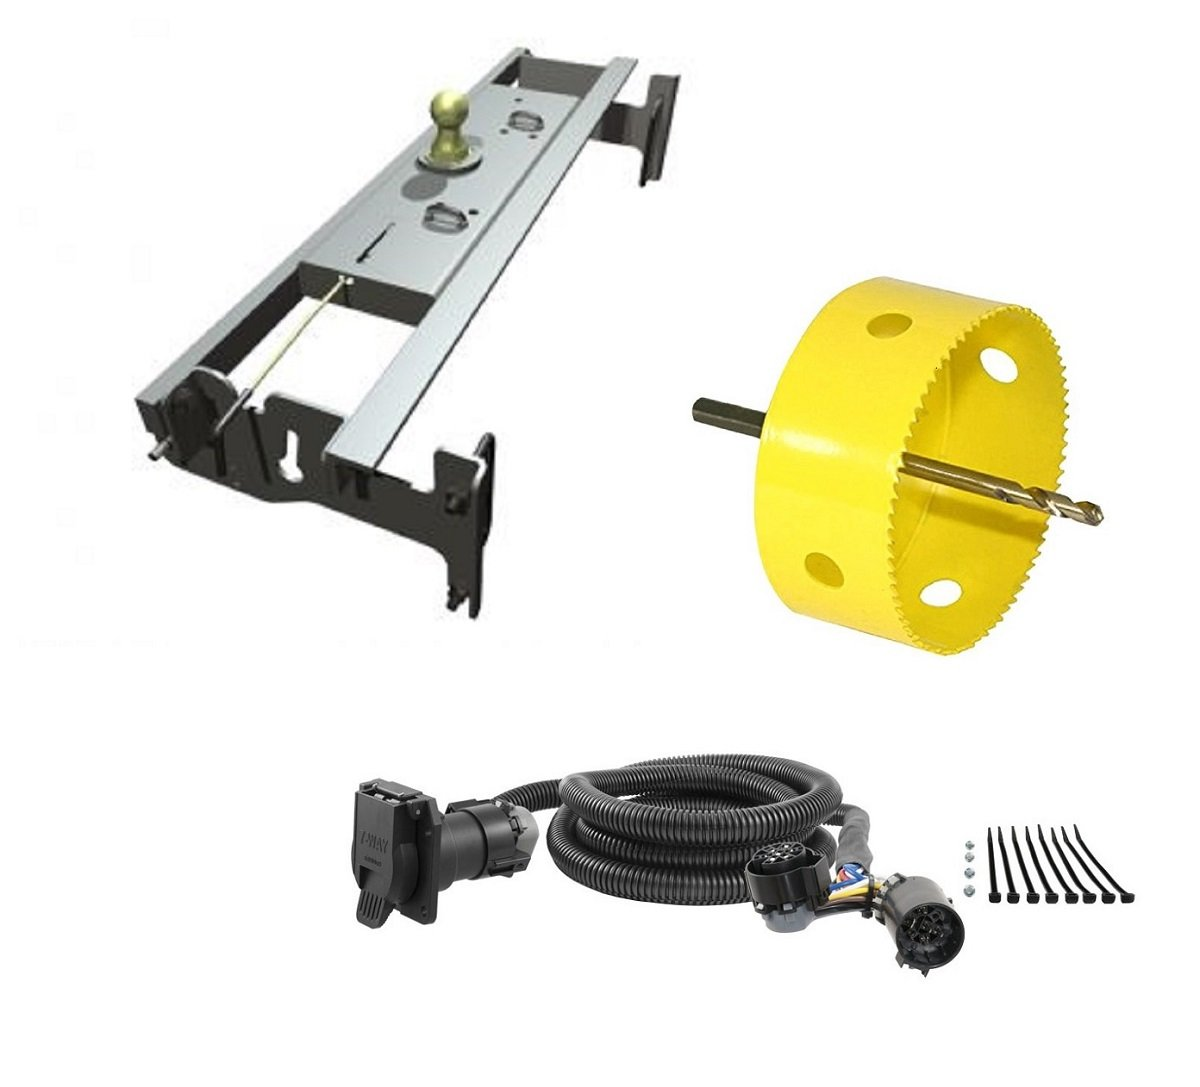 B&W Hitches GNRK1313 Turnoverball Gooseneck Hitch Kit w/ 4'' Hole Saw Drill Bit & 7' Wiring Harness Extension for Dodge Trucks